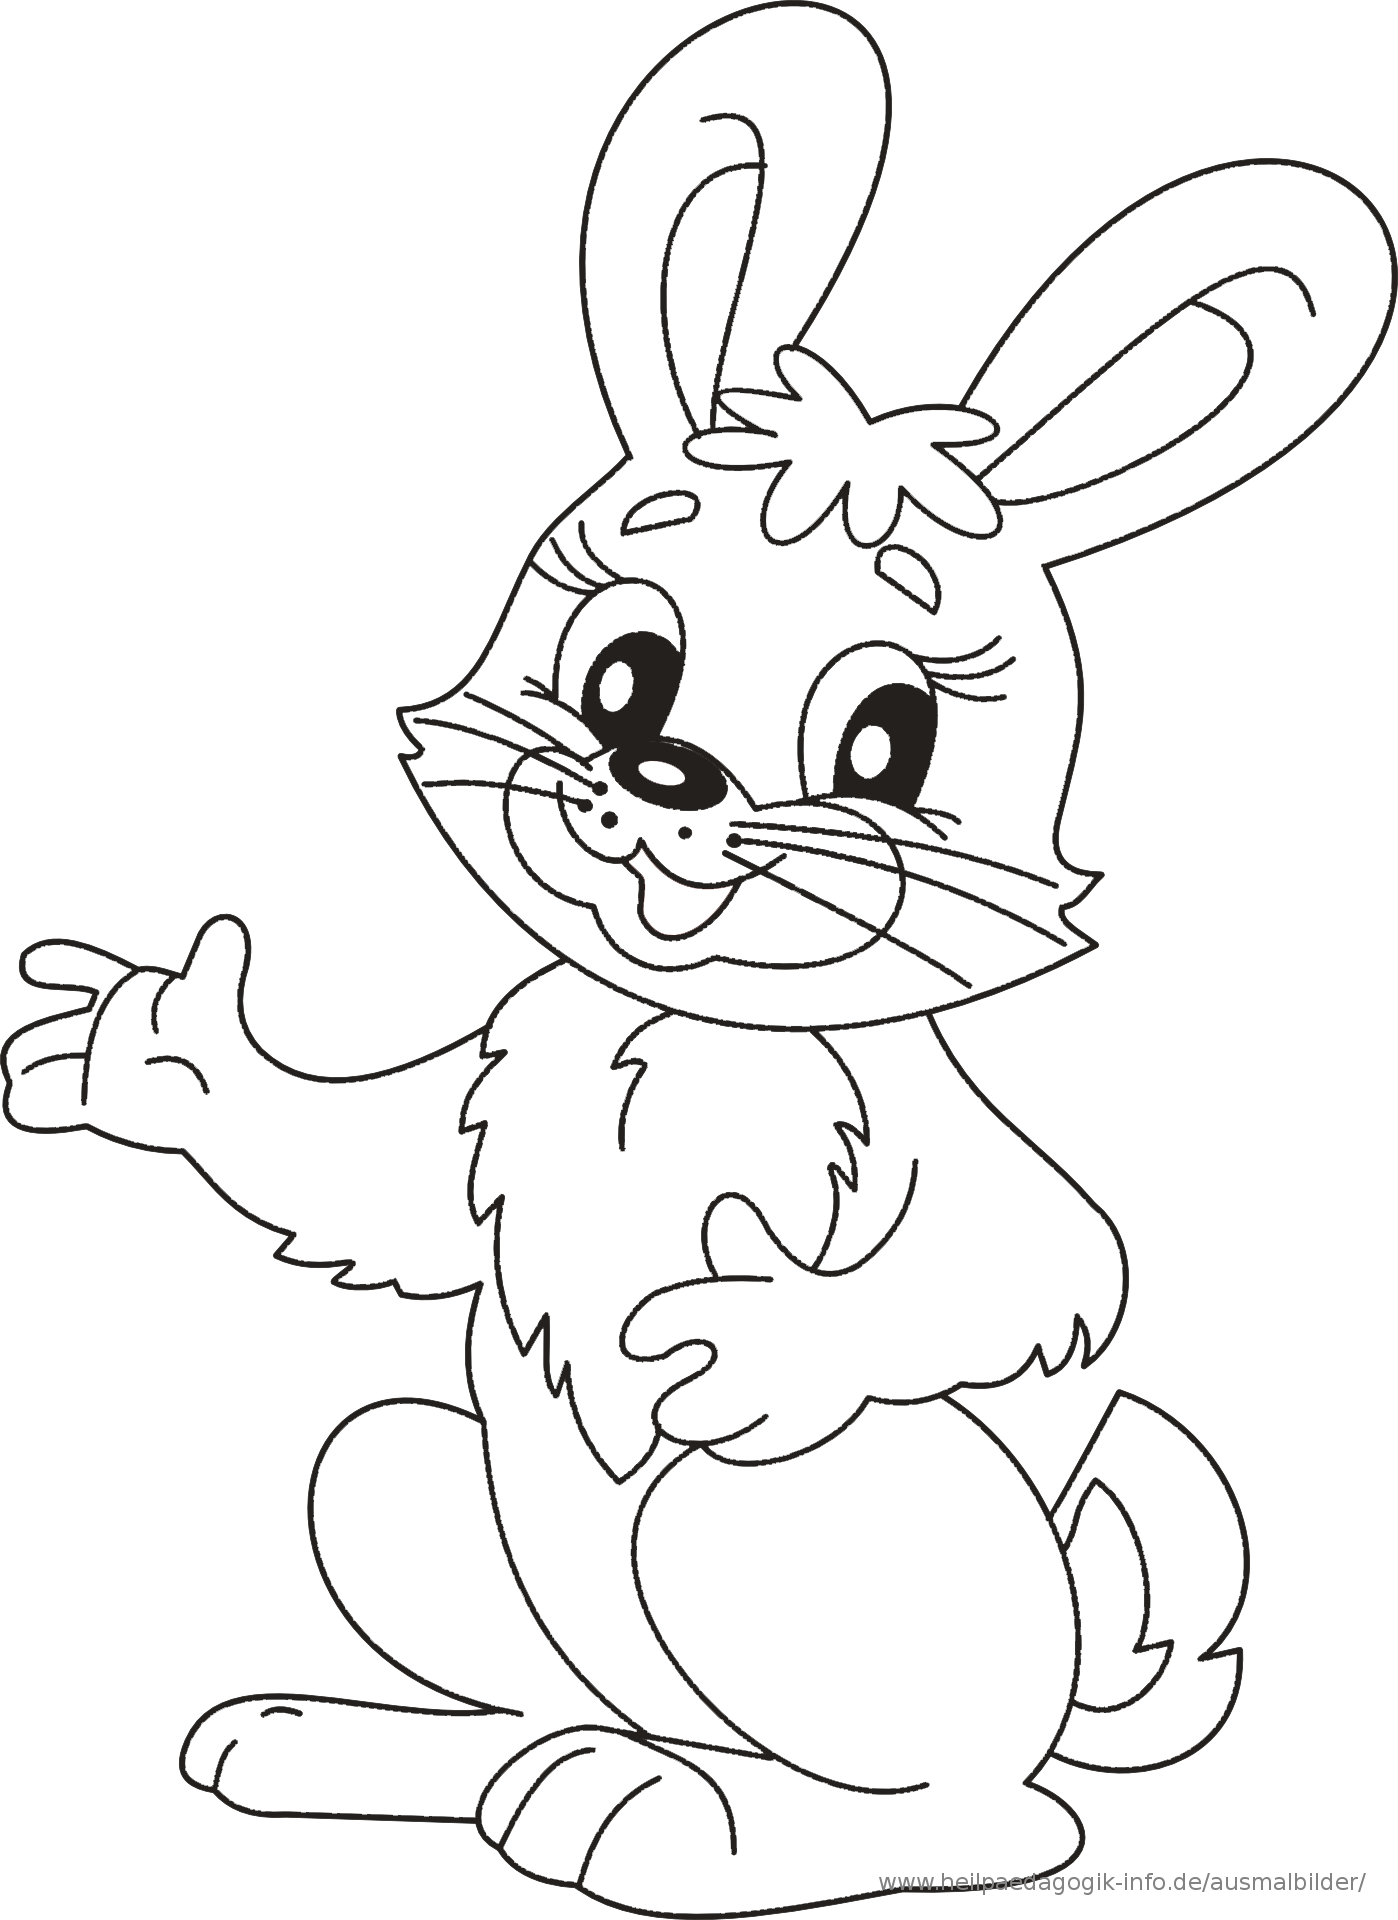 Bunny coloring pages, Easter bunny colouring, Kids ...